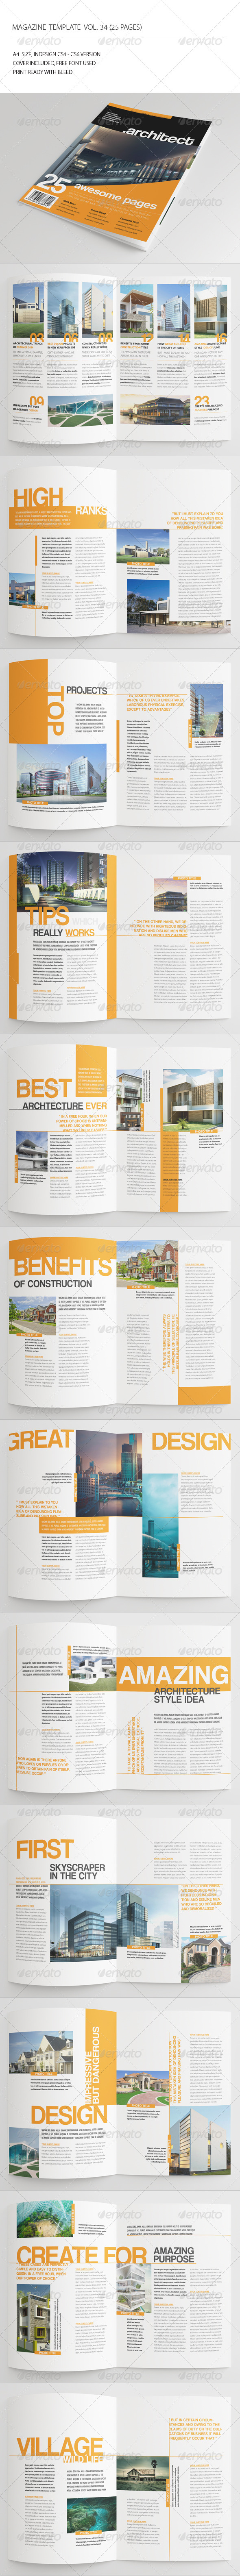 25 Pages Architecture Magazine Vol34 - Magazines Print Templates